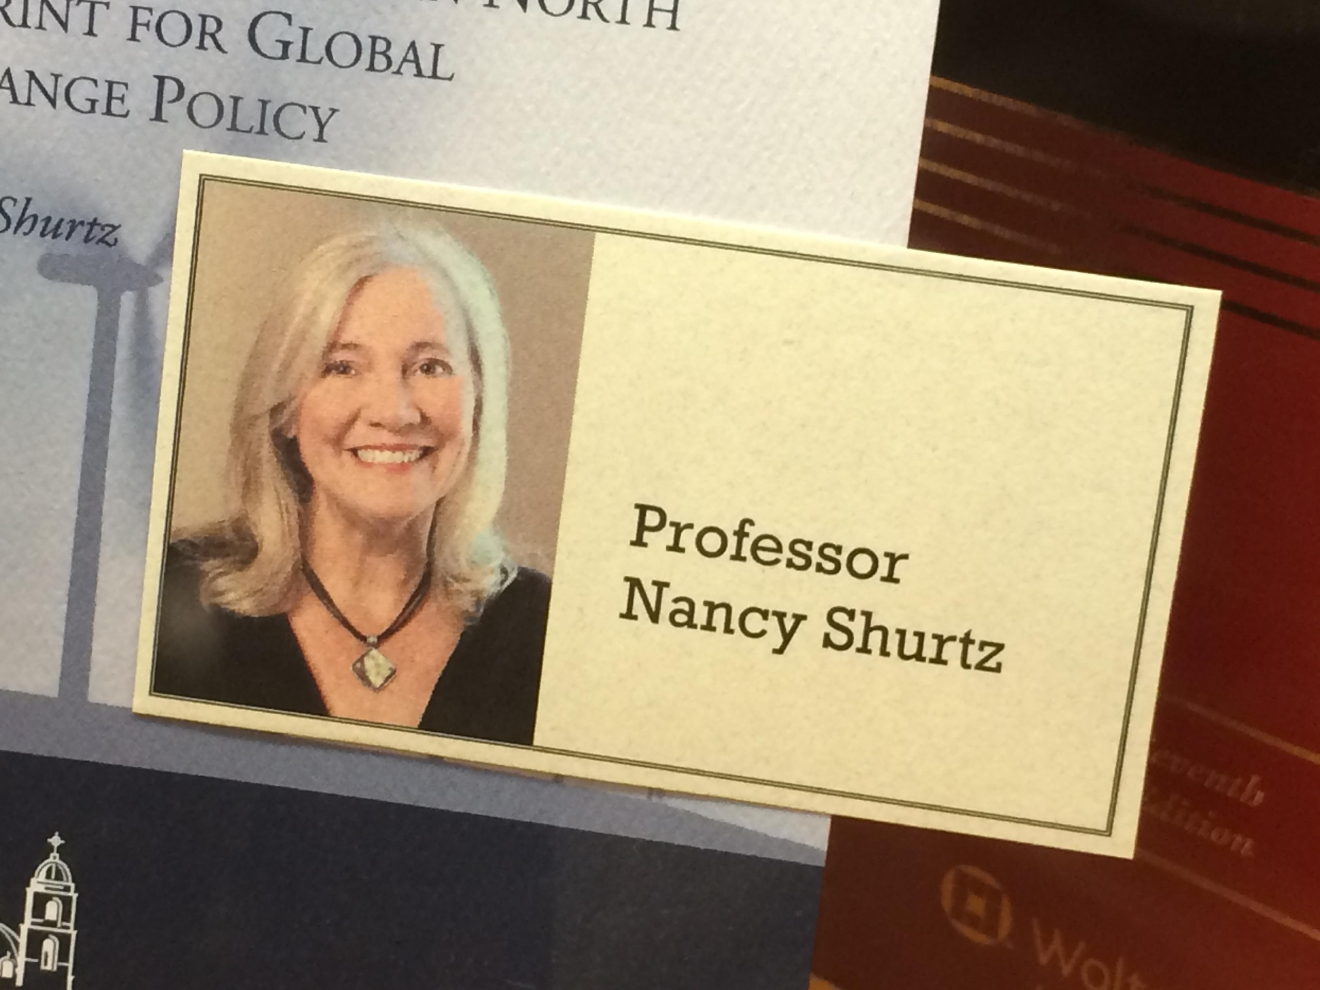 Several law students identified that professor as Nancy Shurtz. On Thursday afternoon, law students held a closed-door forum inside the law school to discuss the allegations and how to move forward. Some students leaving the forum described a tense atmosphere. (SBG)